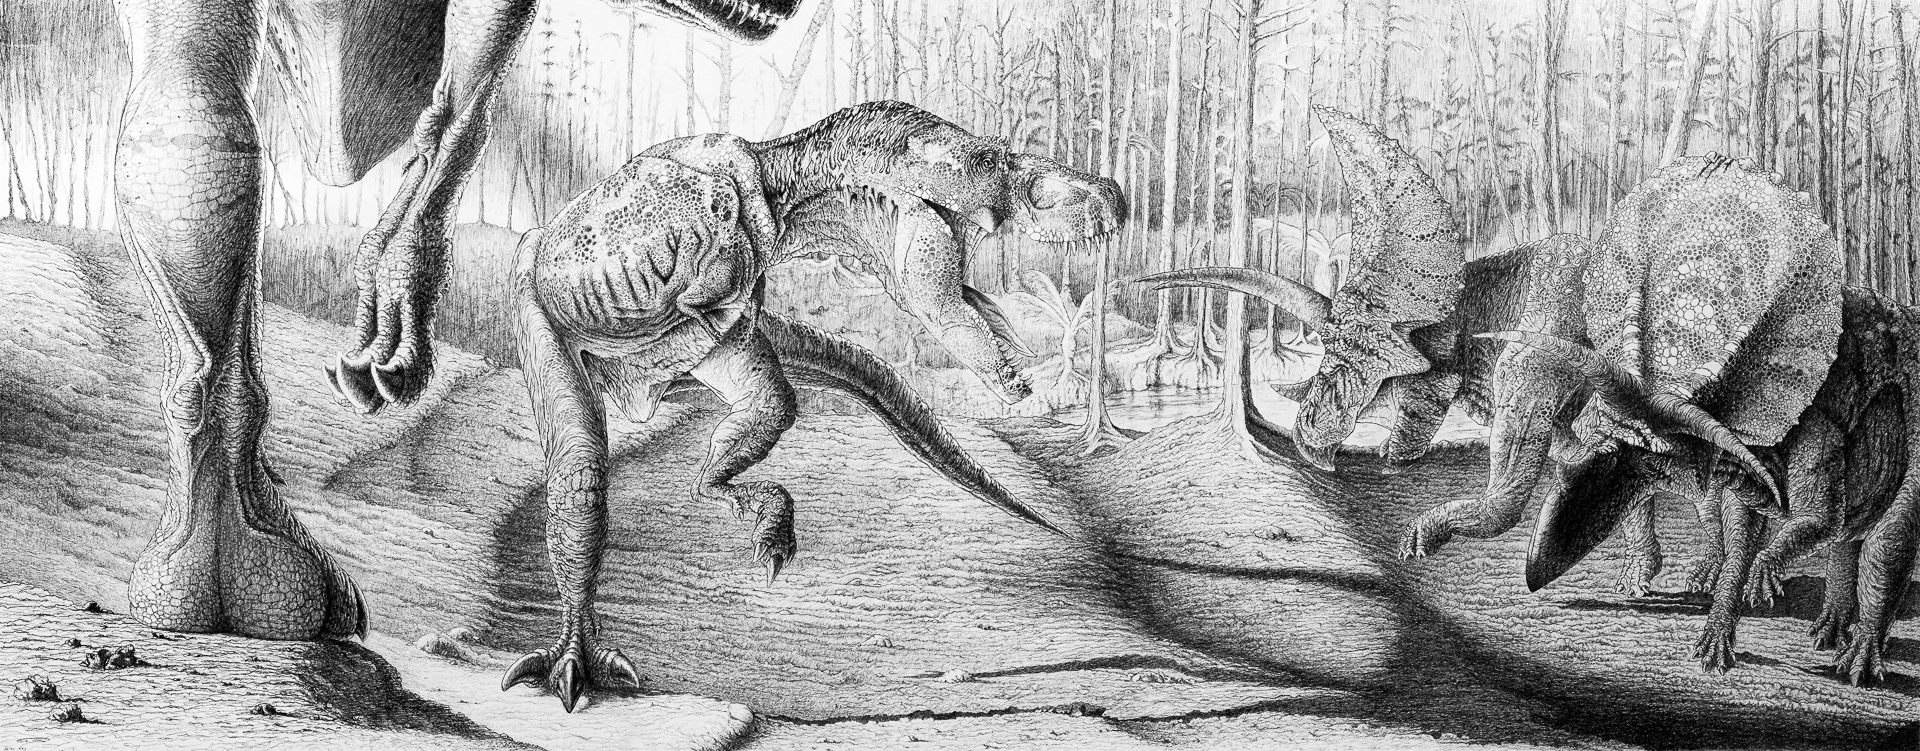 War Cry, Tyrannosaurus rex, Triceratops, forest, Cretaceous, theropod, ceratopsian, sunset, pencil sketch, gesso, black and white